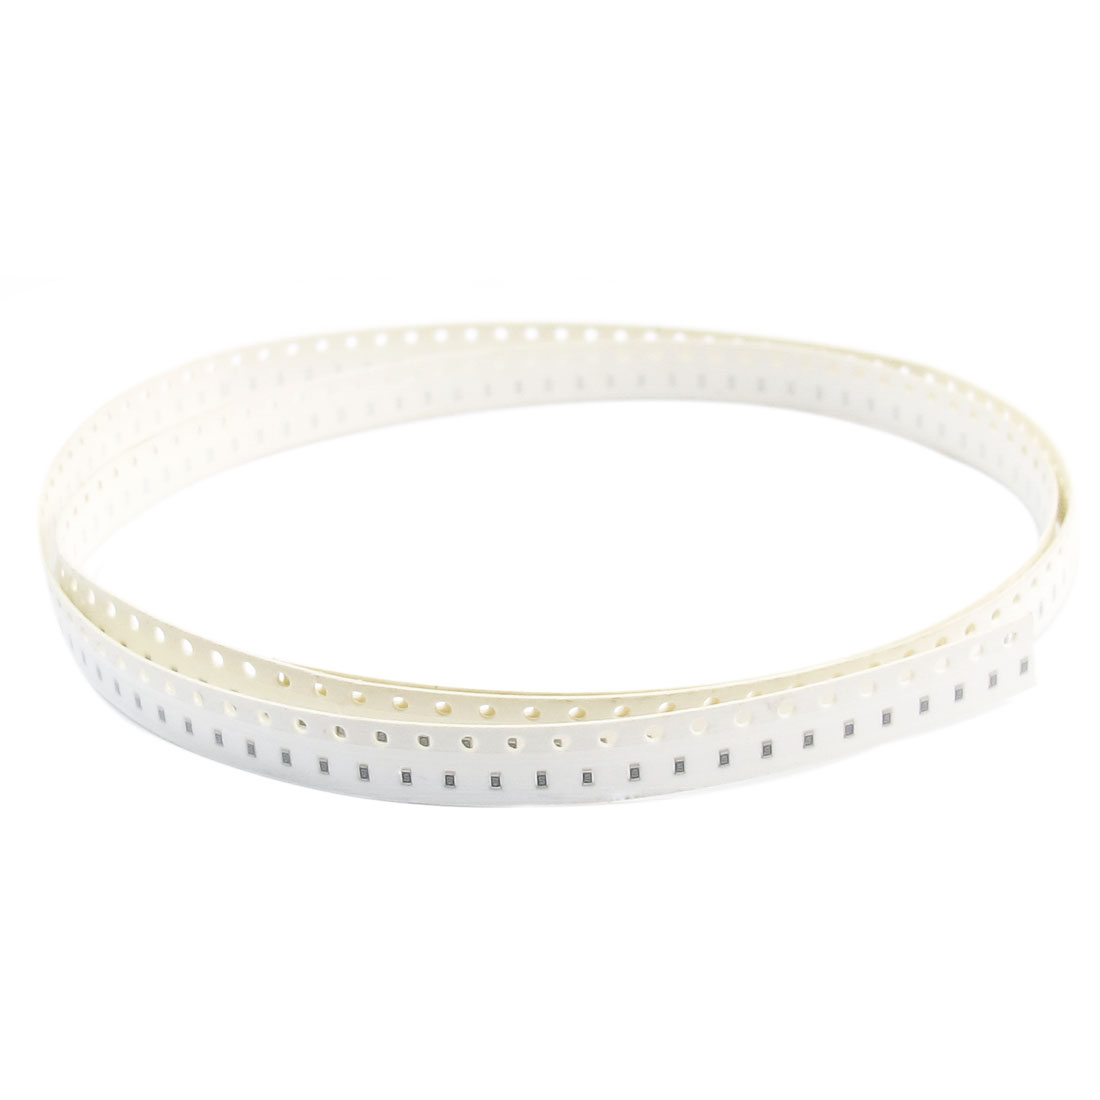 200 Pcs 0603 1608 4.7KOhm Resistance 1/16W Watt 5% Tolerance Surface Mounted Film SMT SMD Chip Resistors Strip